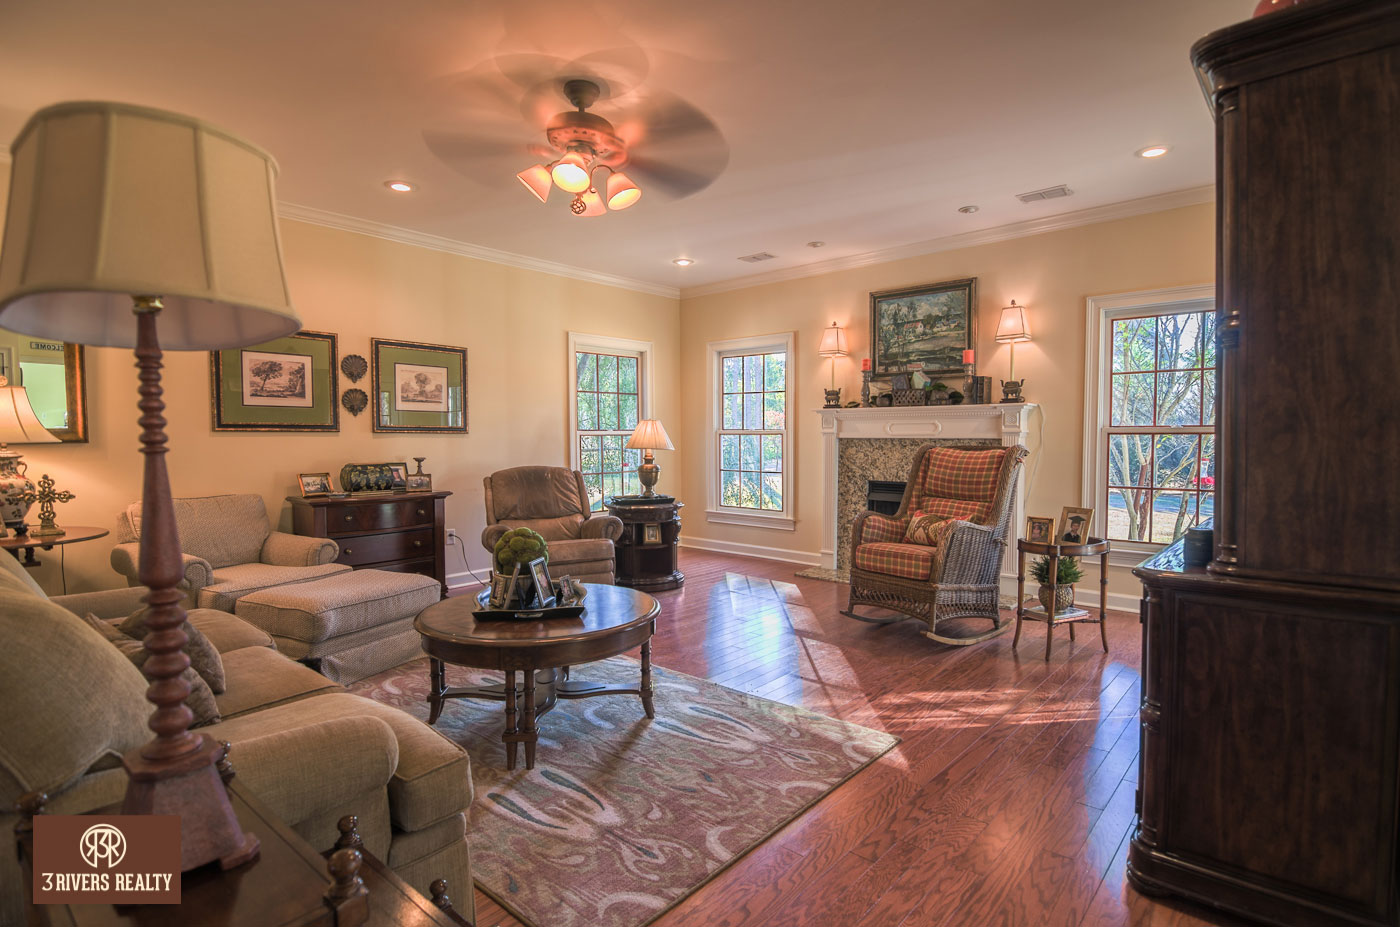 southern-living_georgia-real-estate_3-rivers-realty_south-georgia_home-for-sale_executive-home_home-and-land_decatur-county_custom-home_acreage-7.jpg